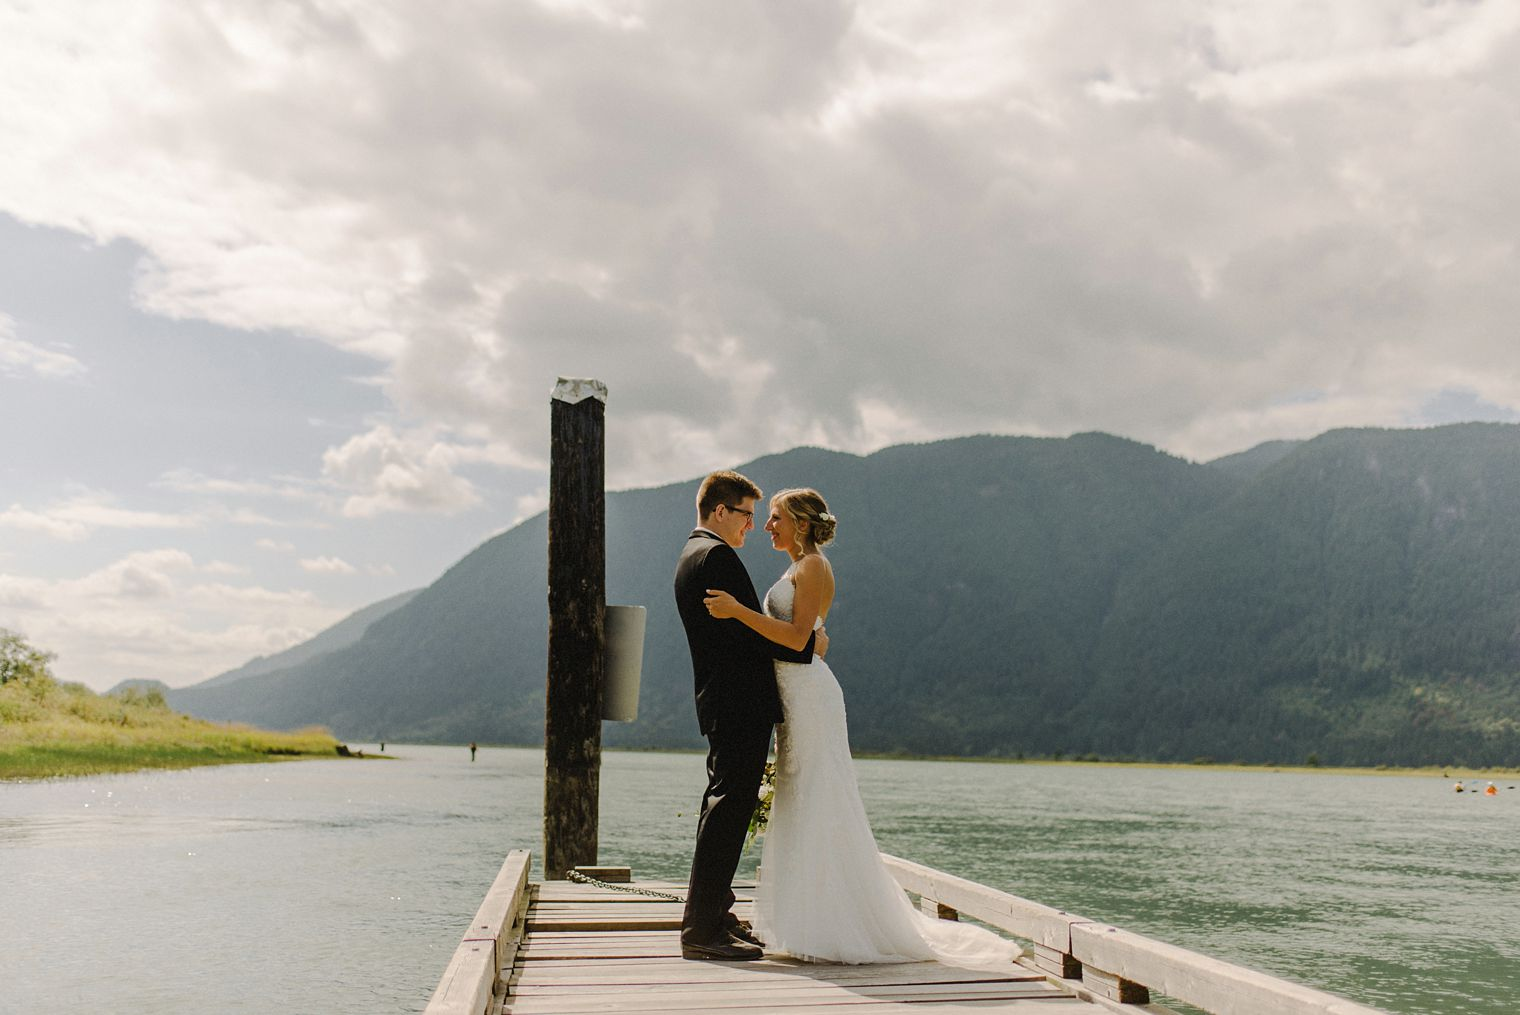 pitt lake dock wedding photo